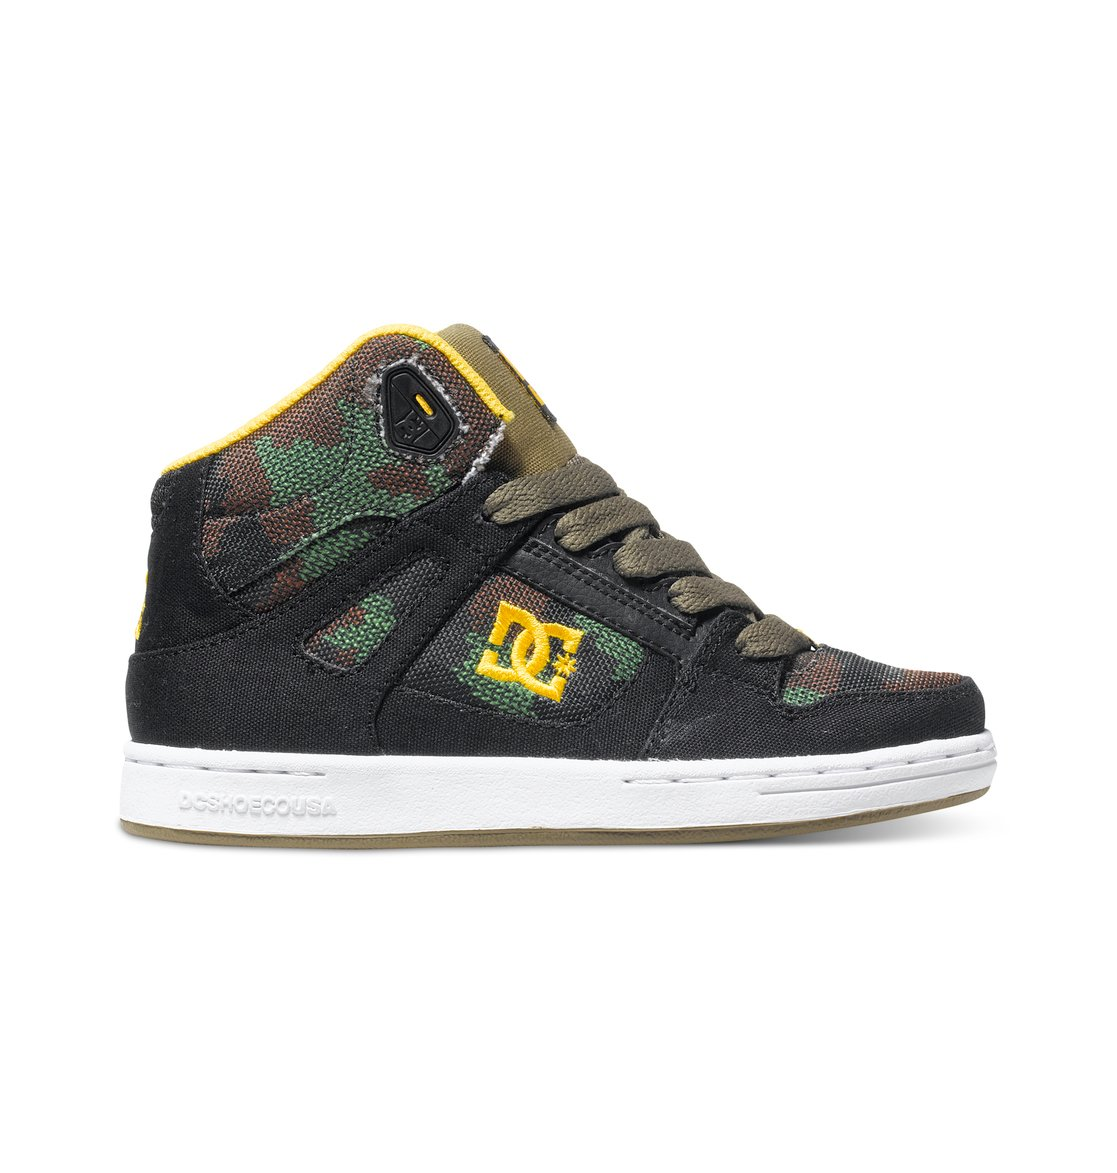 White Dc Shoes High Tops